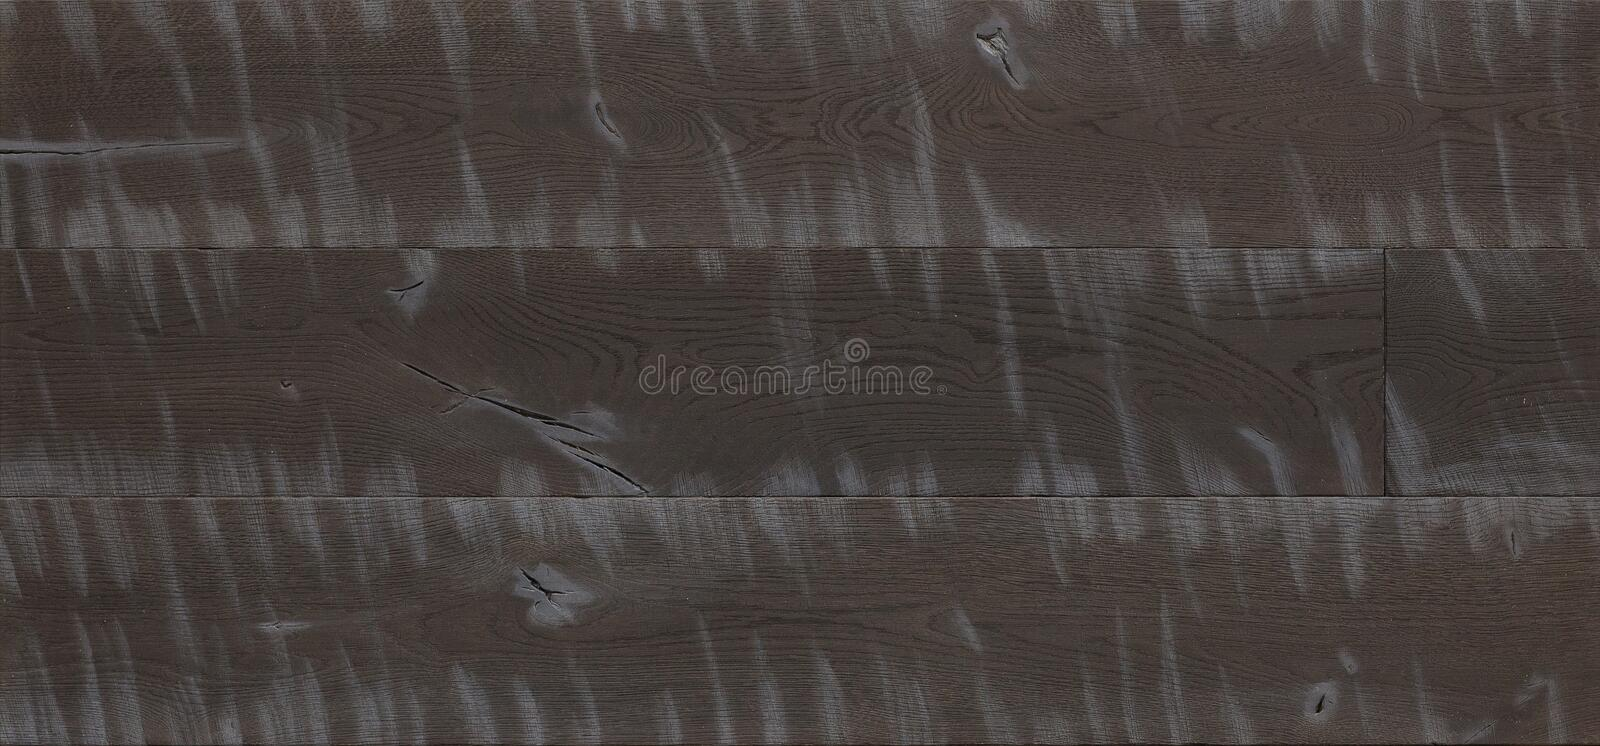 Natural wooden background, grunge parquet flooring design royalty free stock photos